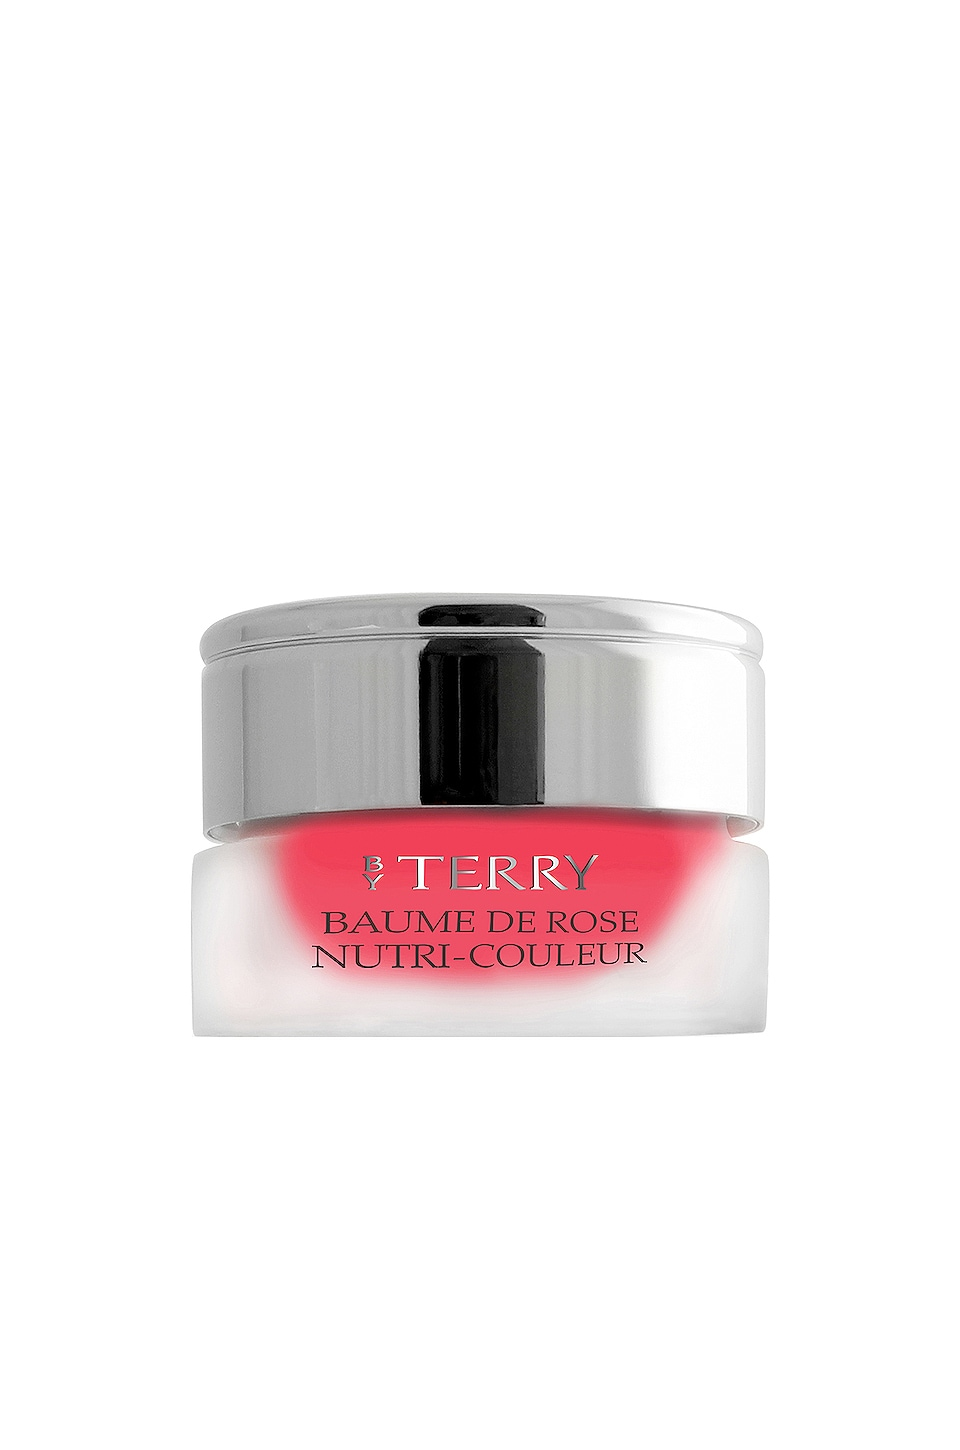 By Terry Baume De Rose Nutri Couleur in Cherry Bomb